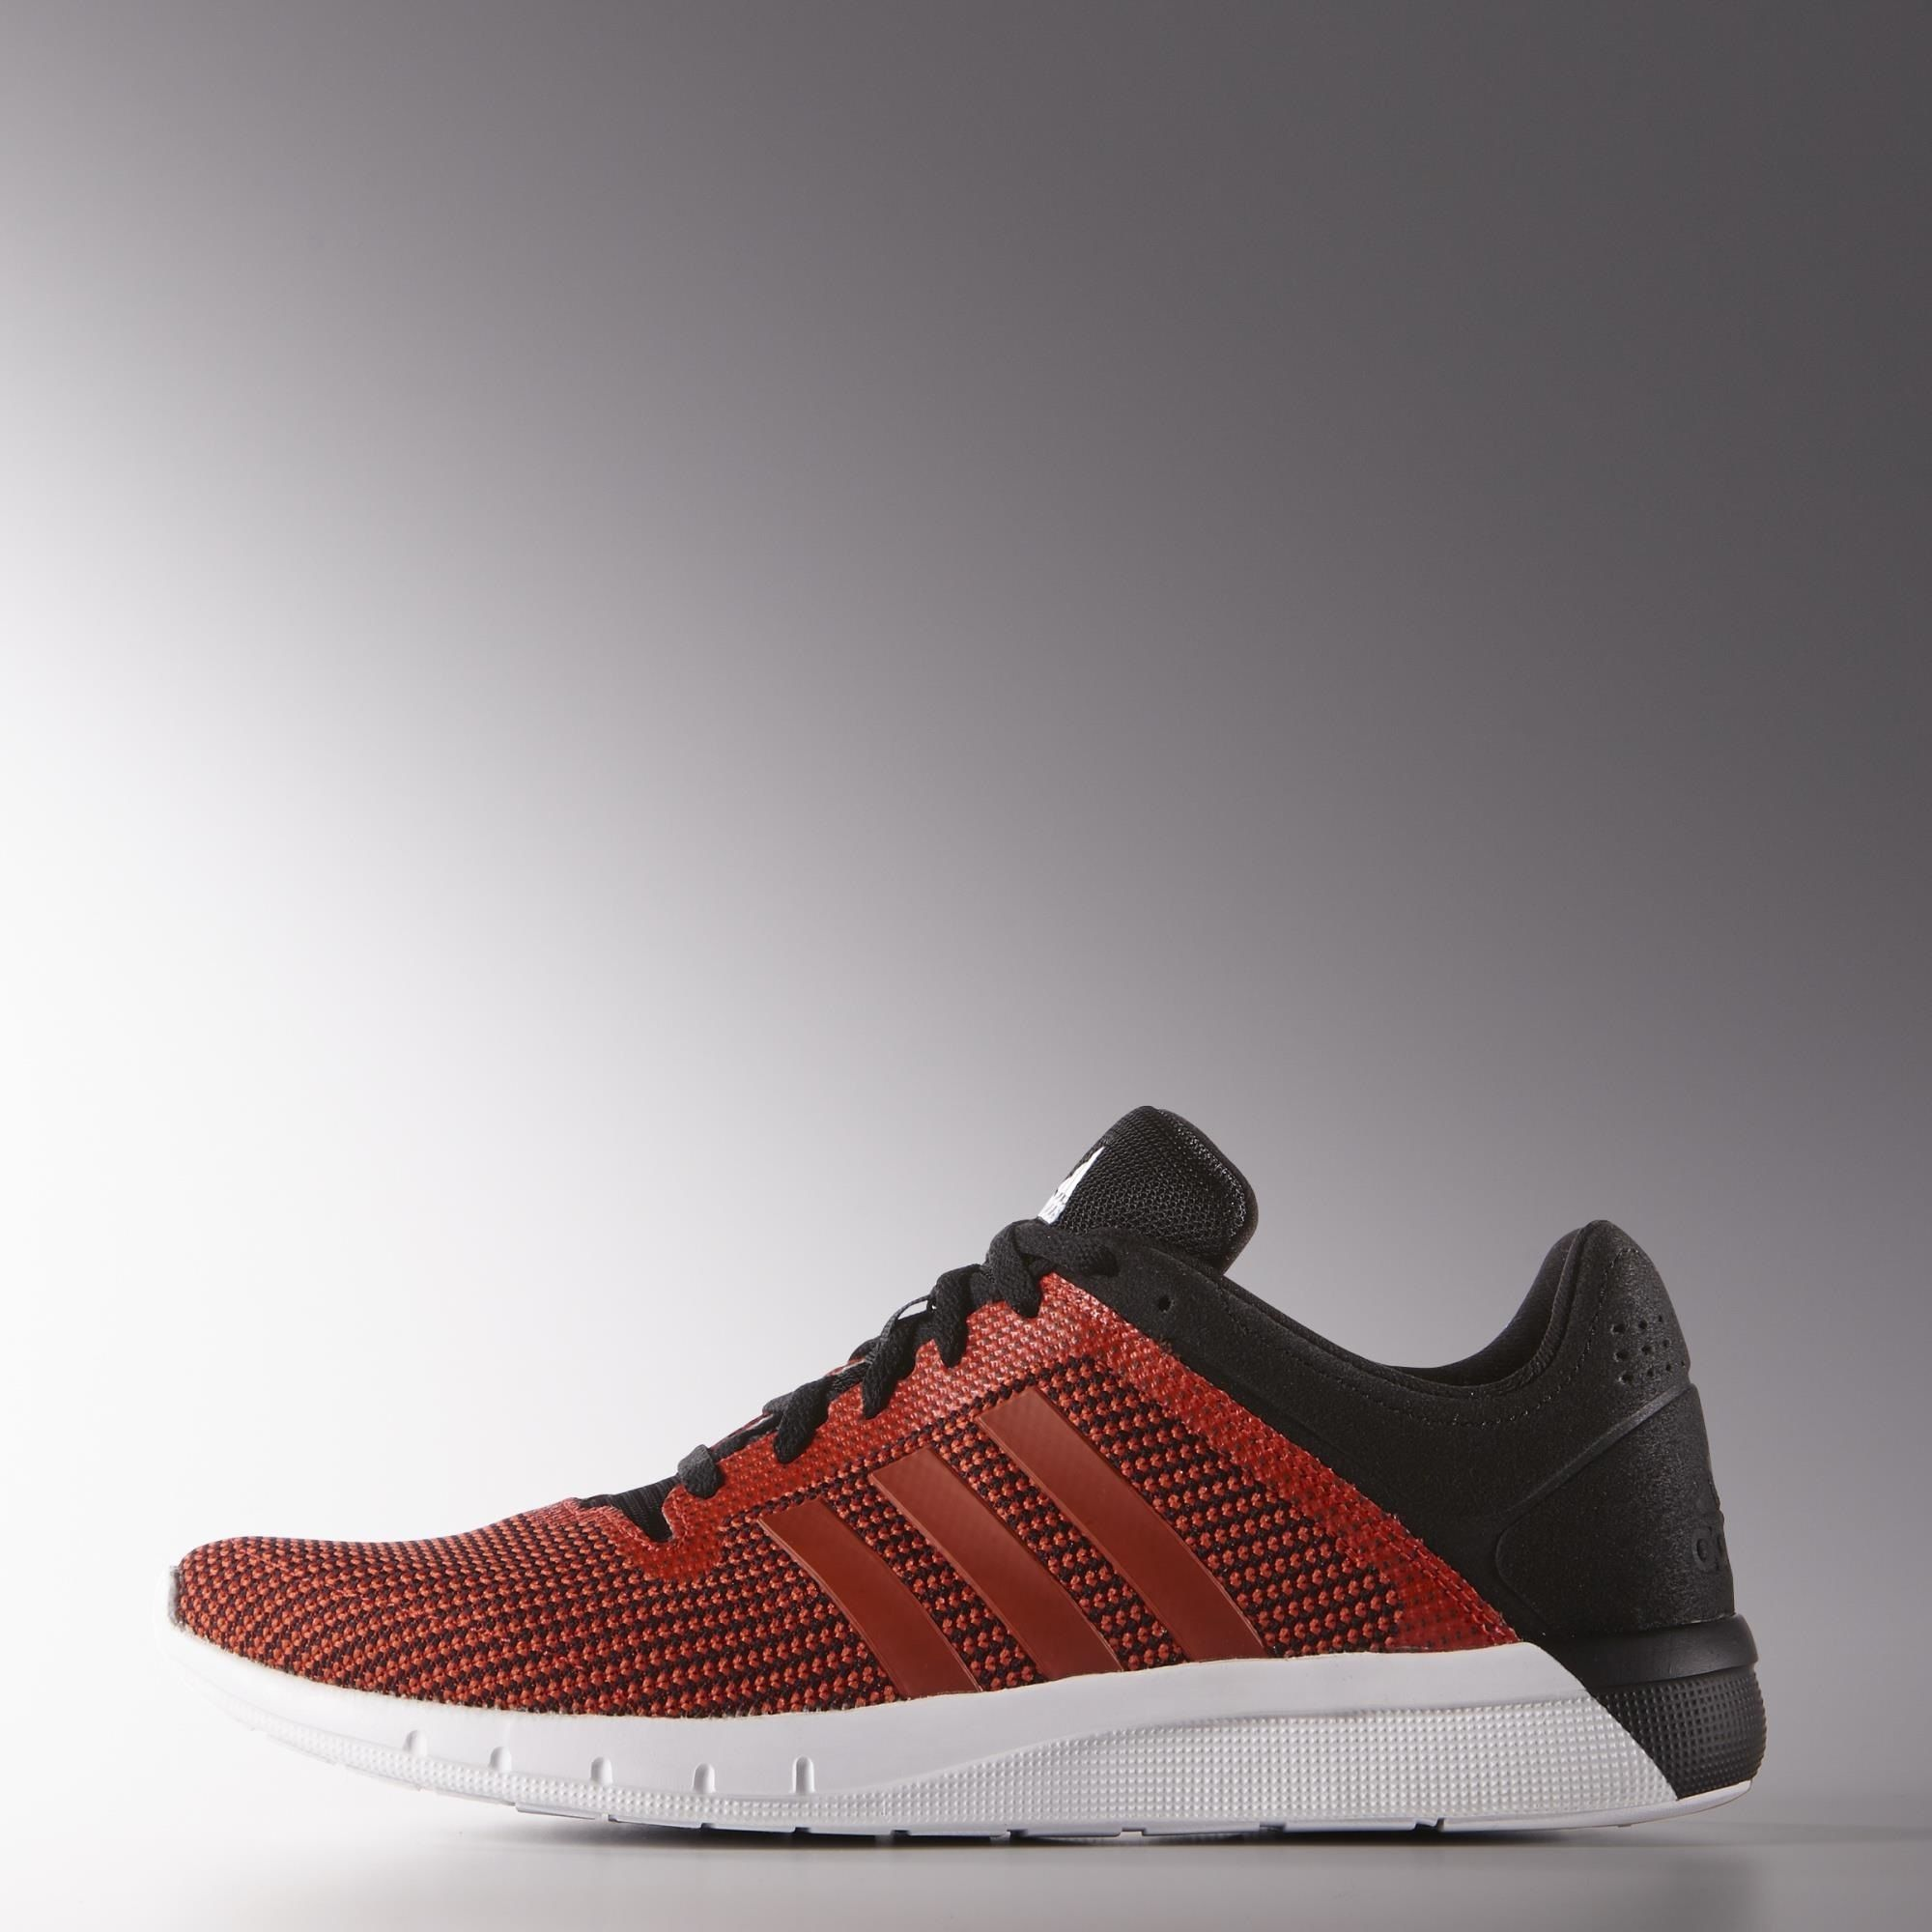 adidas climacool black and orange